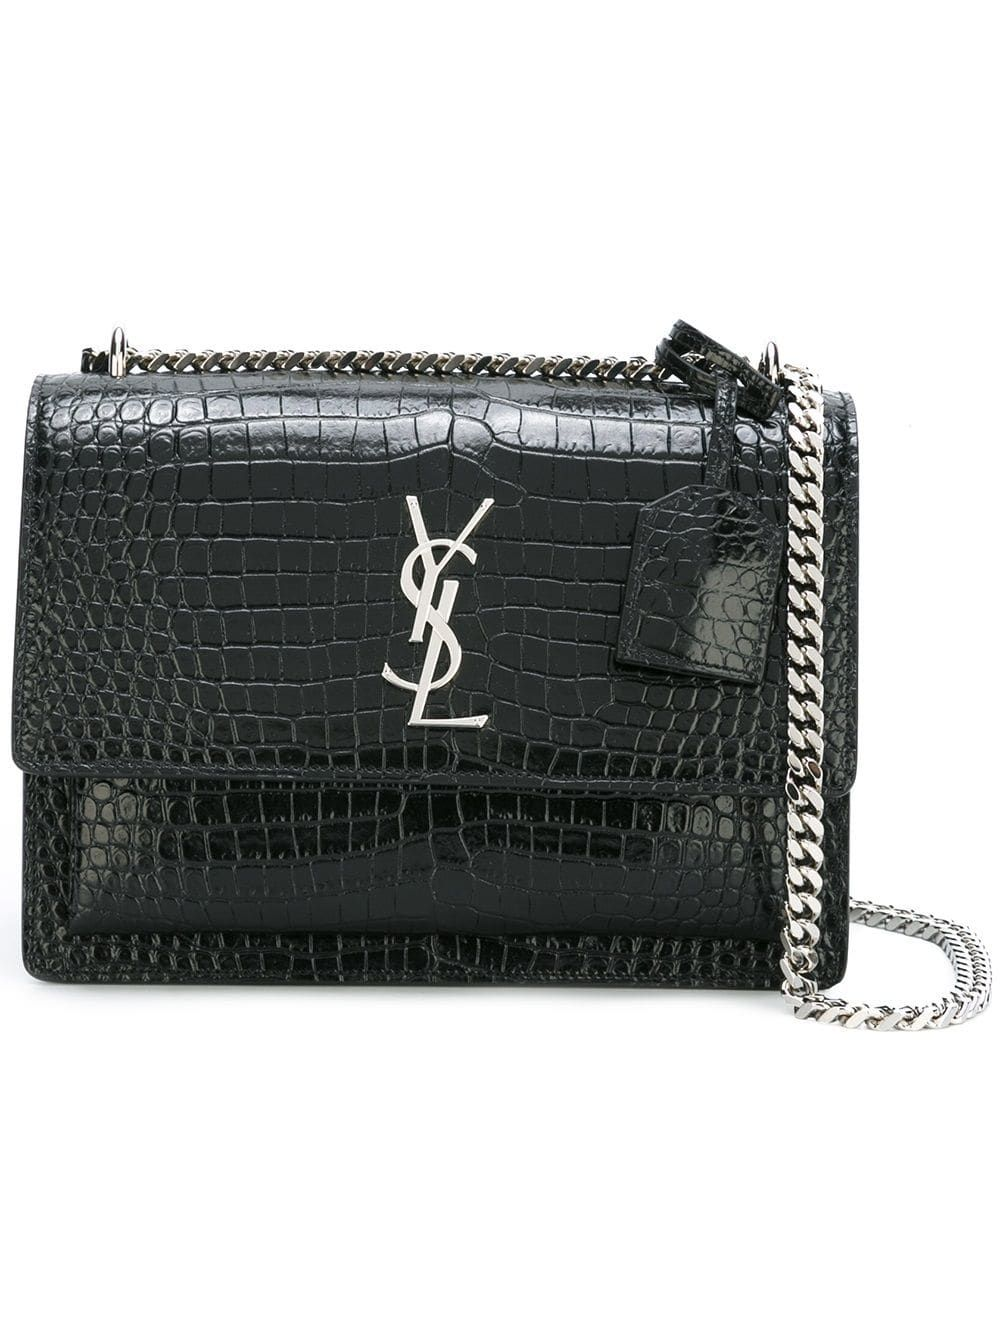 1f391591606 Saint Laurent Sunset Monogram Chain Wallet in 2019 | Lil Evening ...